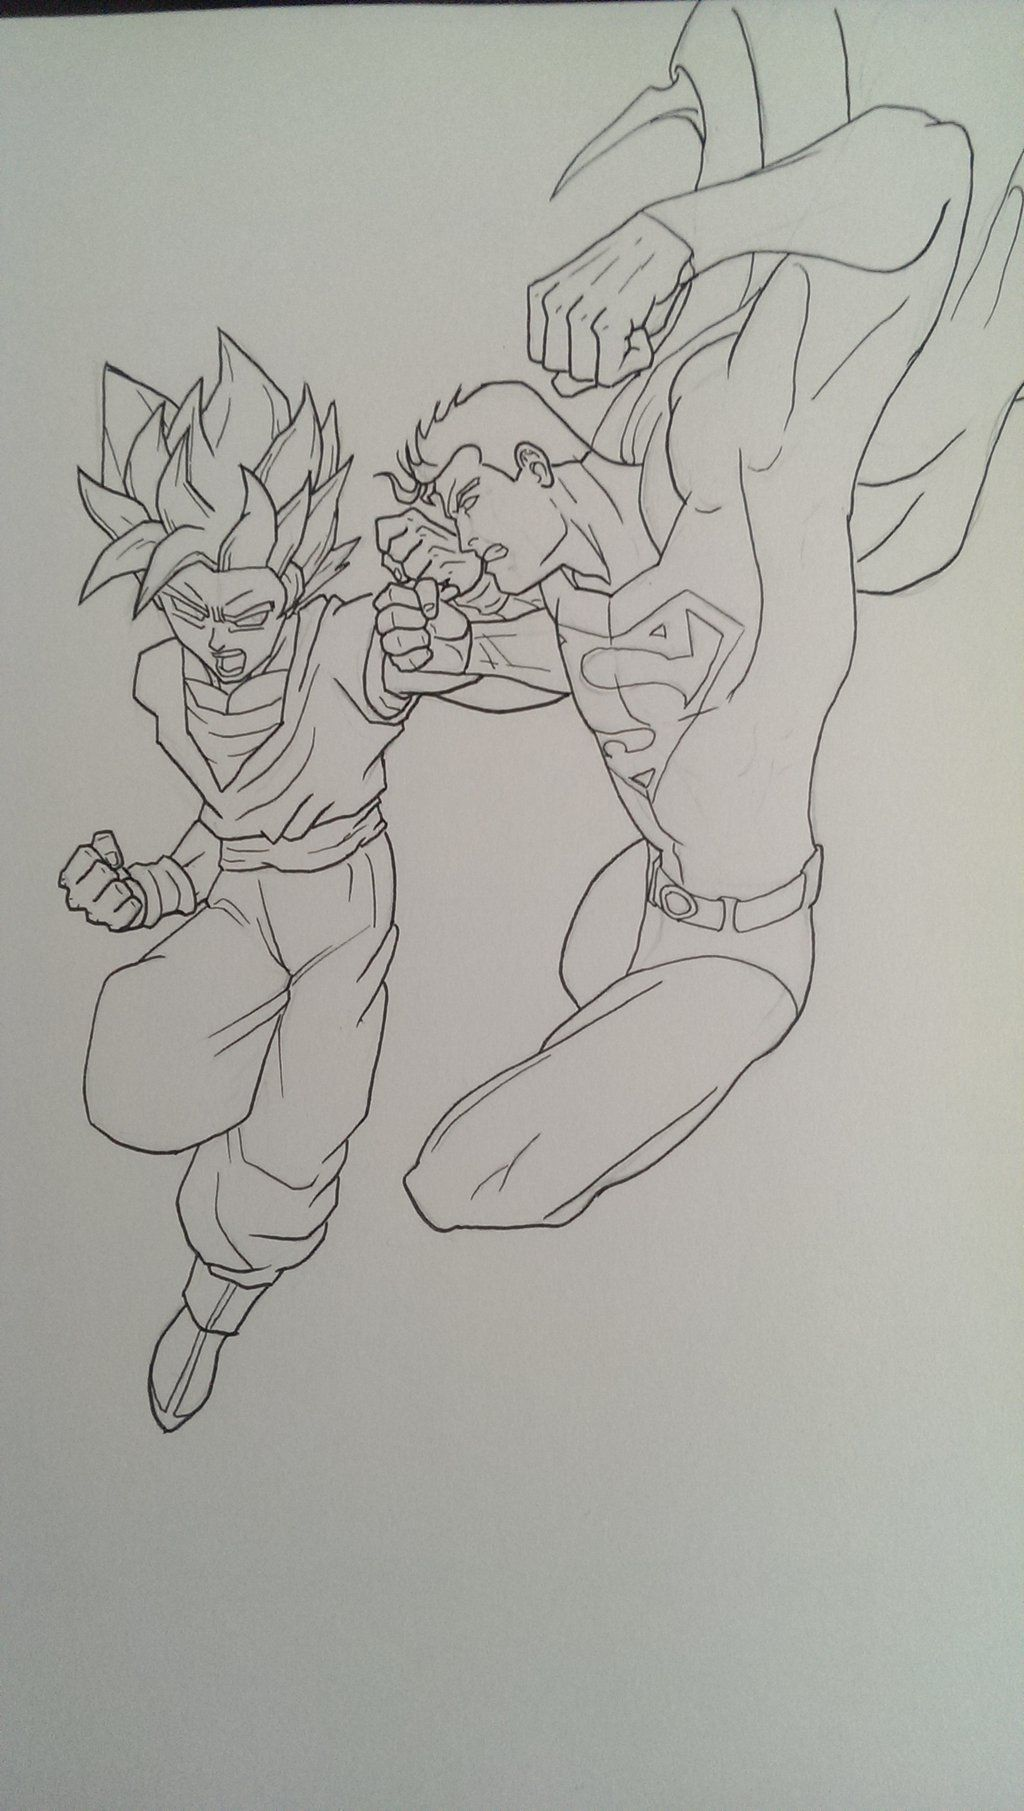 Goku vs Superman by wsjoop1119.deviantart.com on ...